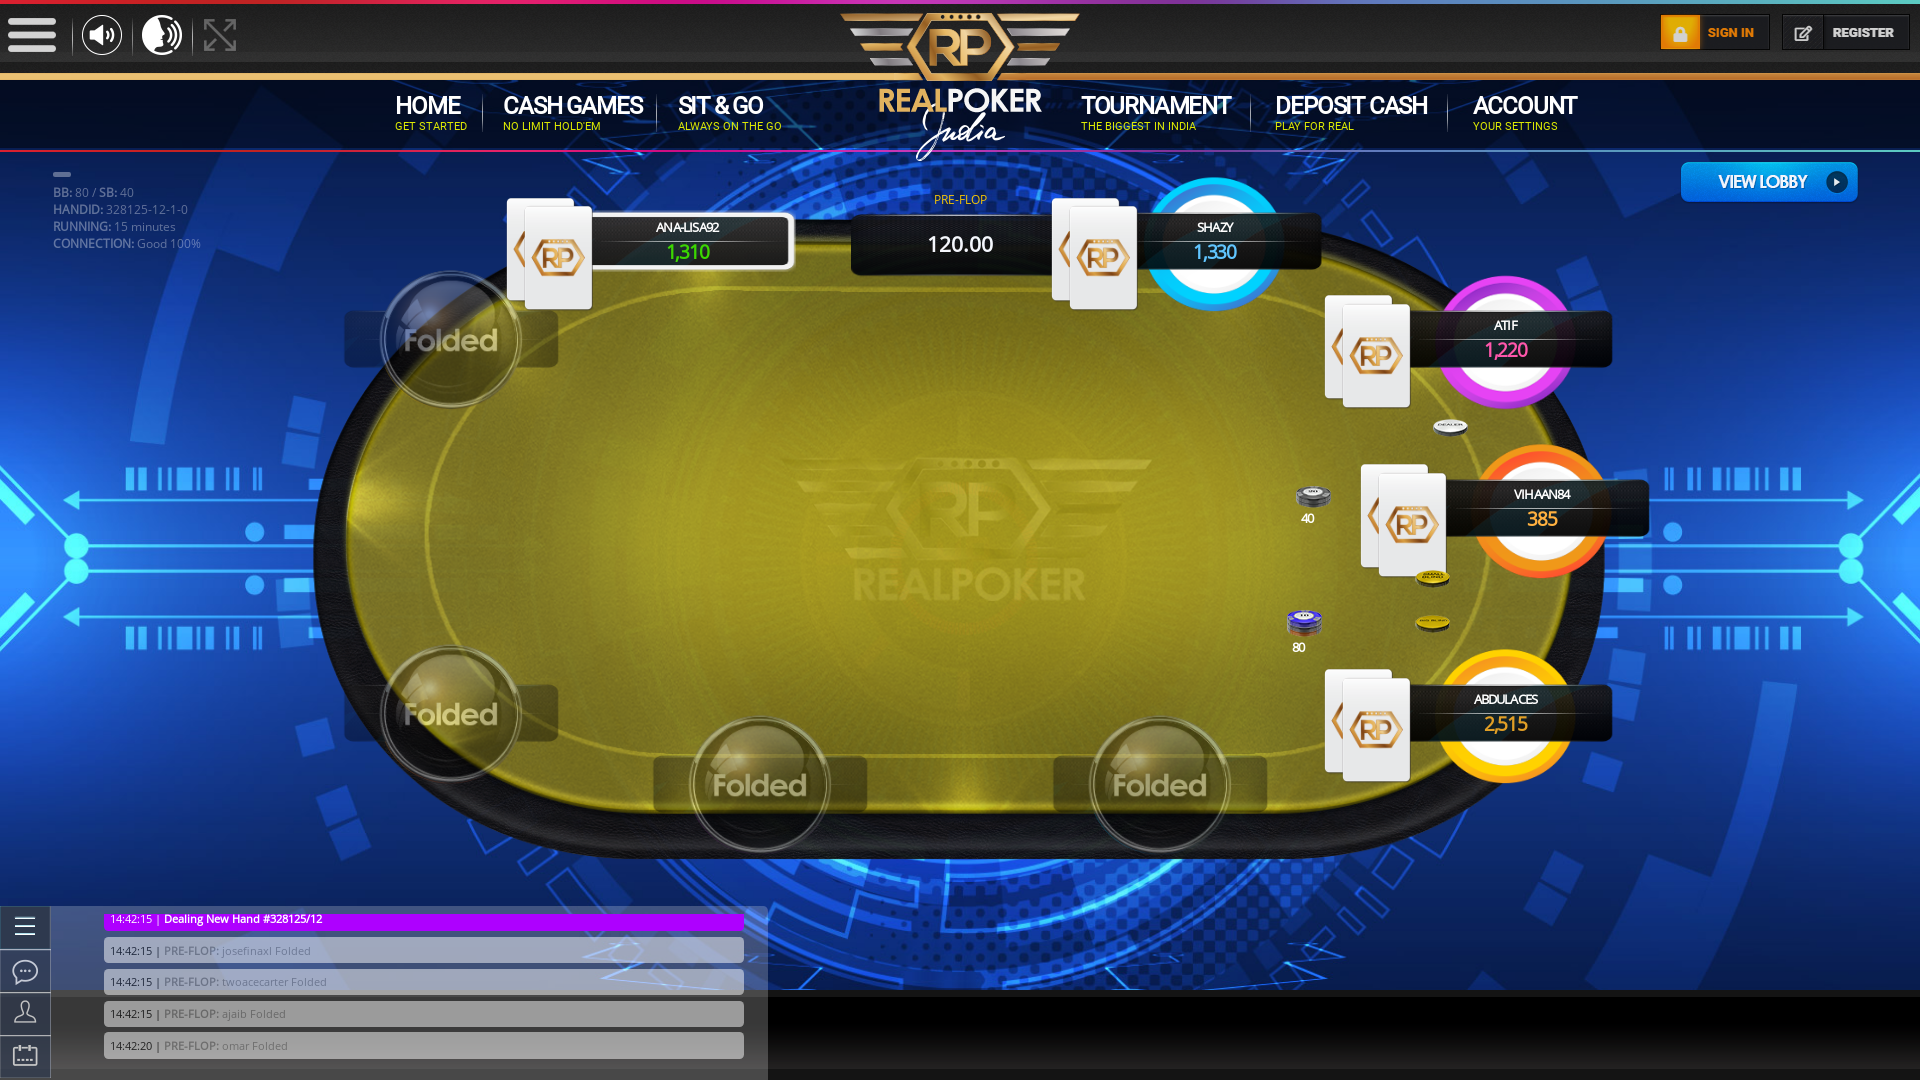 Real poker 10 player table in the 15th minute of the match